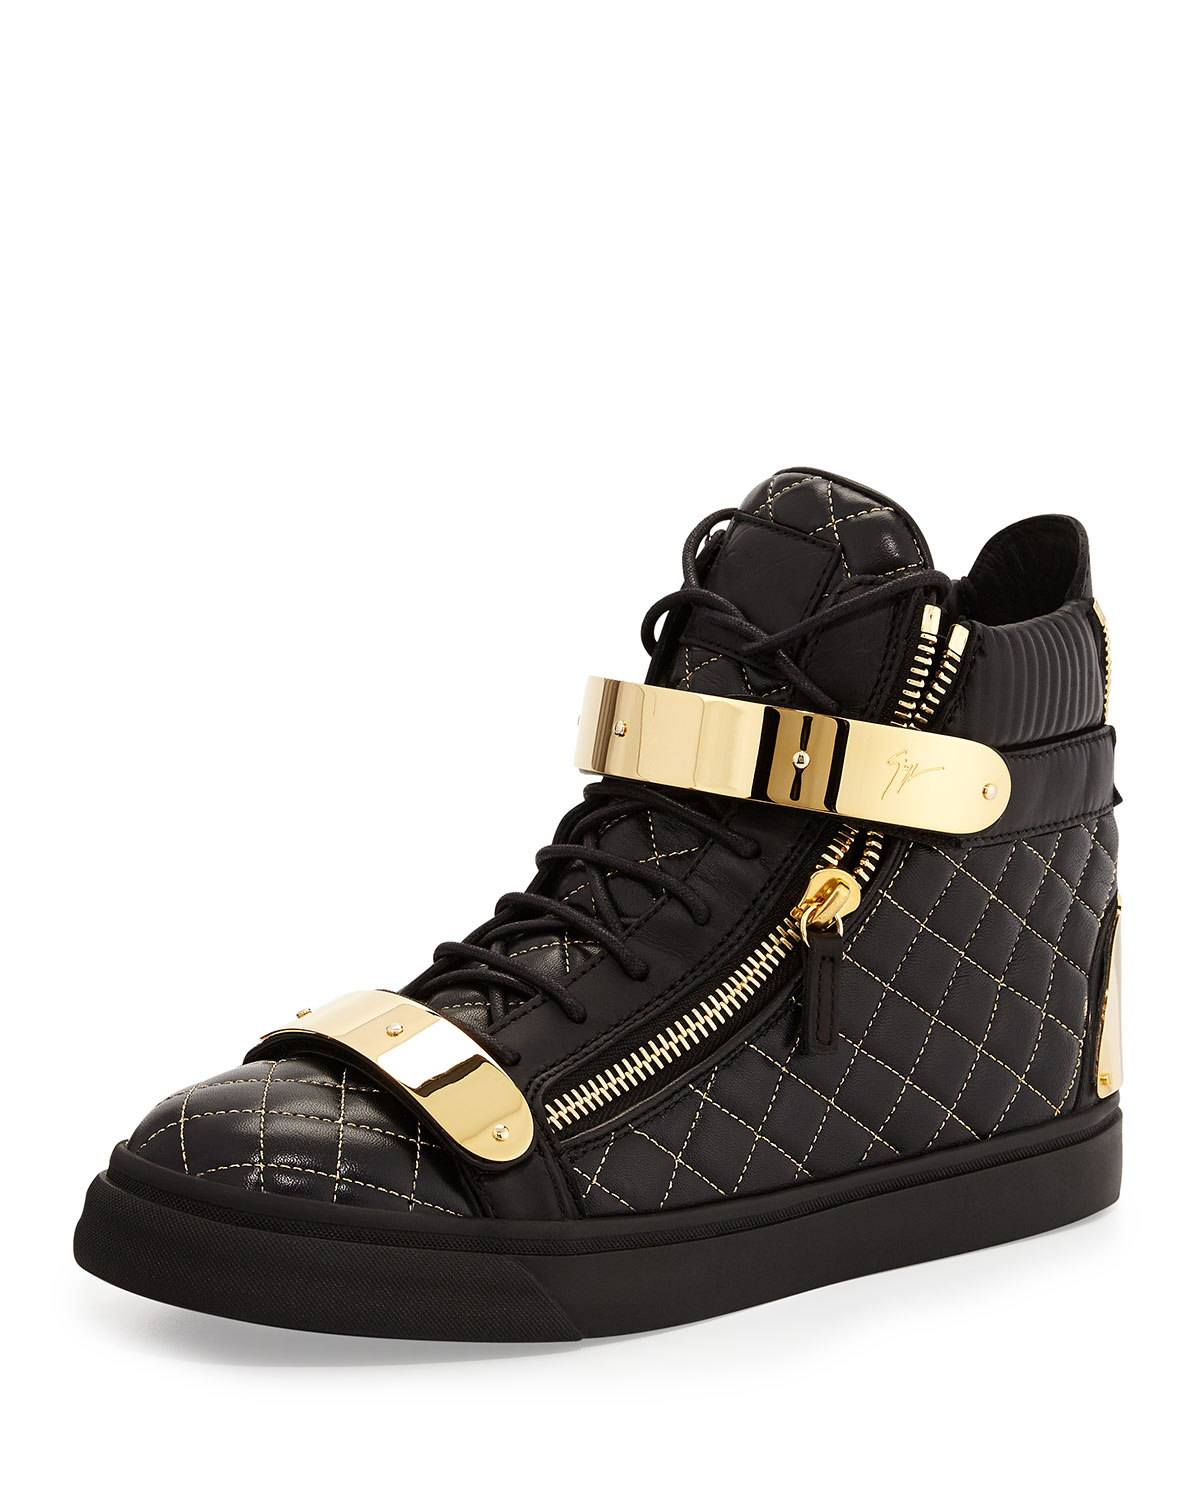 giuseppe zanotti quilted leather high top sneakers in. Black Bedroom Furniture Sets. Home Design Ideas